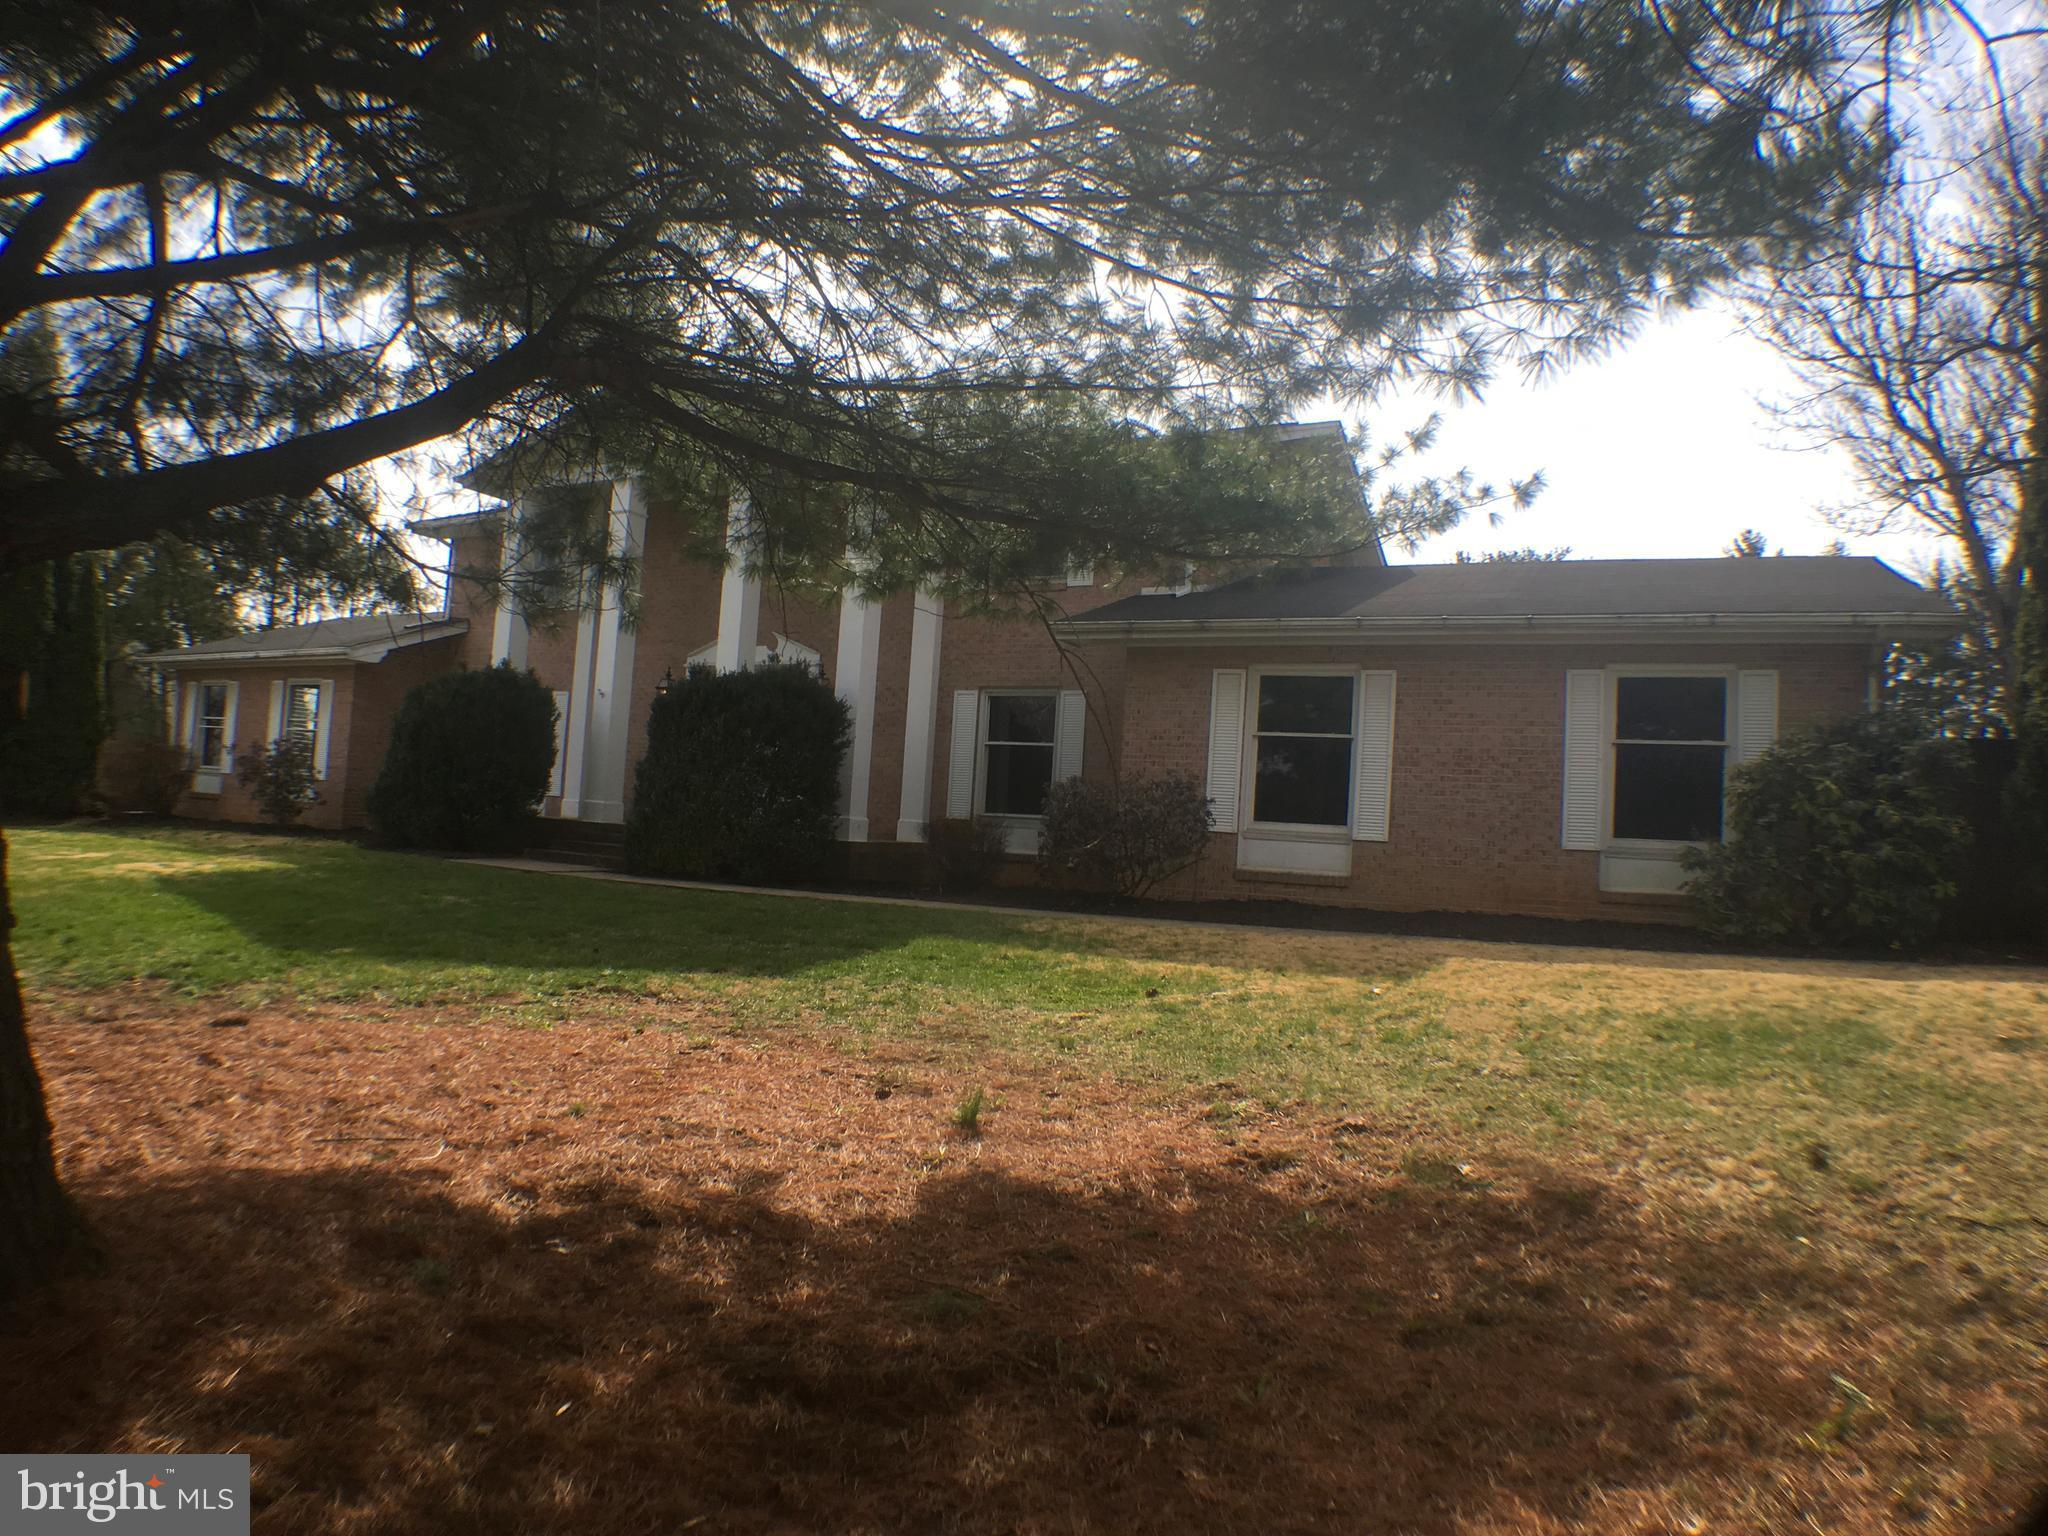 Home on approx 1.00 acre located in Briarwood.  Home features 4 bedroom, 2.5 bathrooms, separate dining room, family room with fireplace, kitchen with island, large sun-room with concrete patio outside, partial basement,  mature landscaping, storage shed,